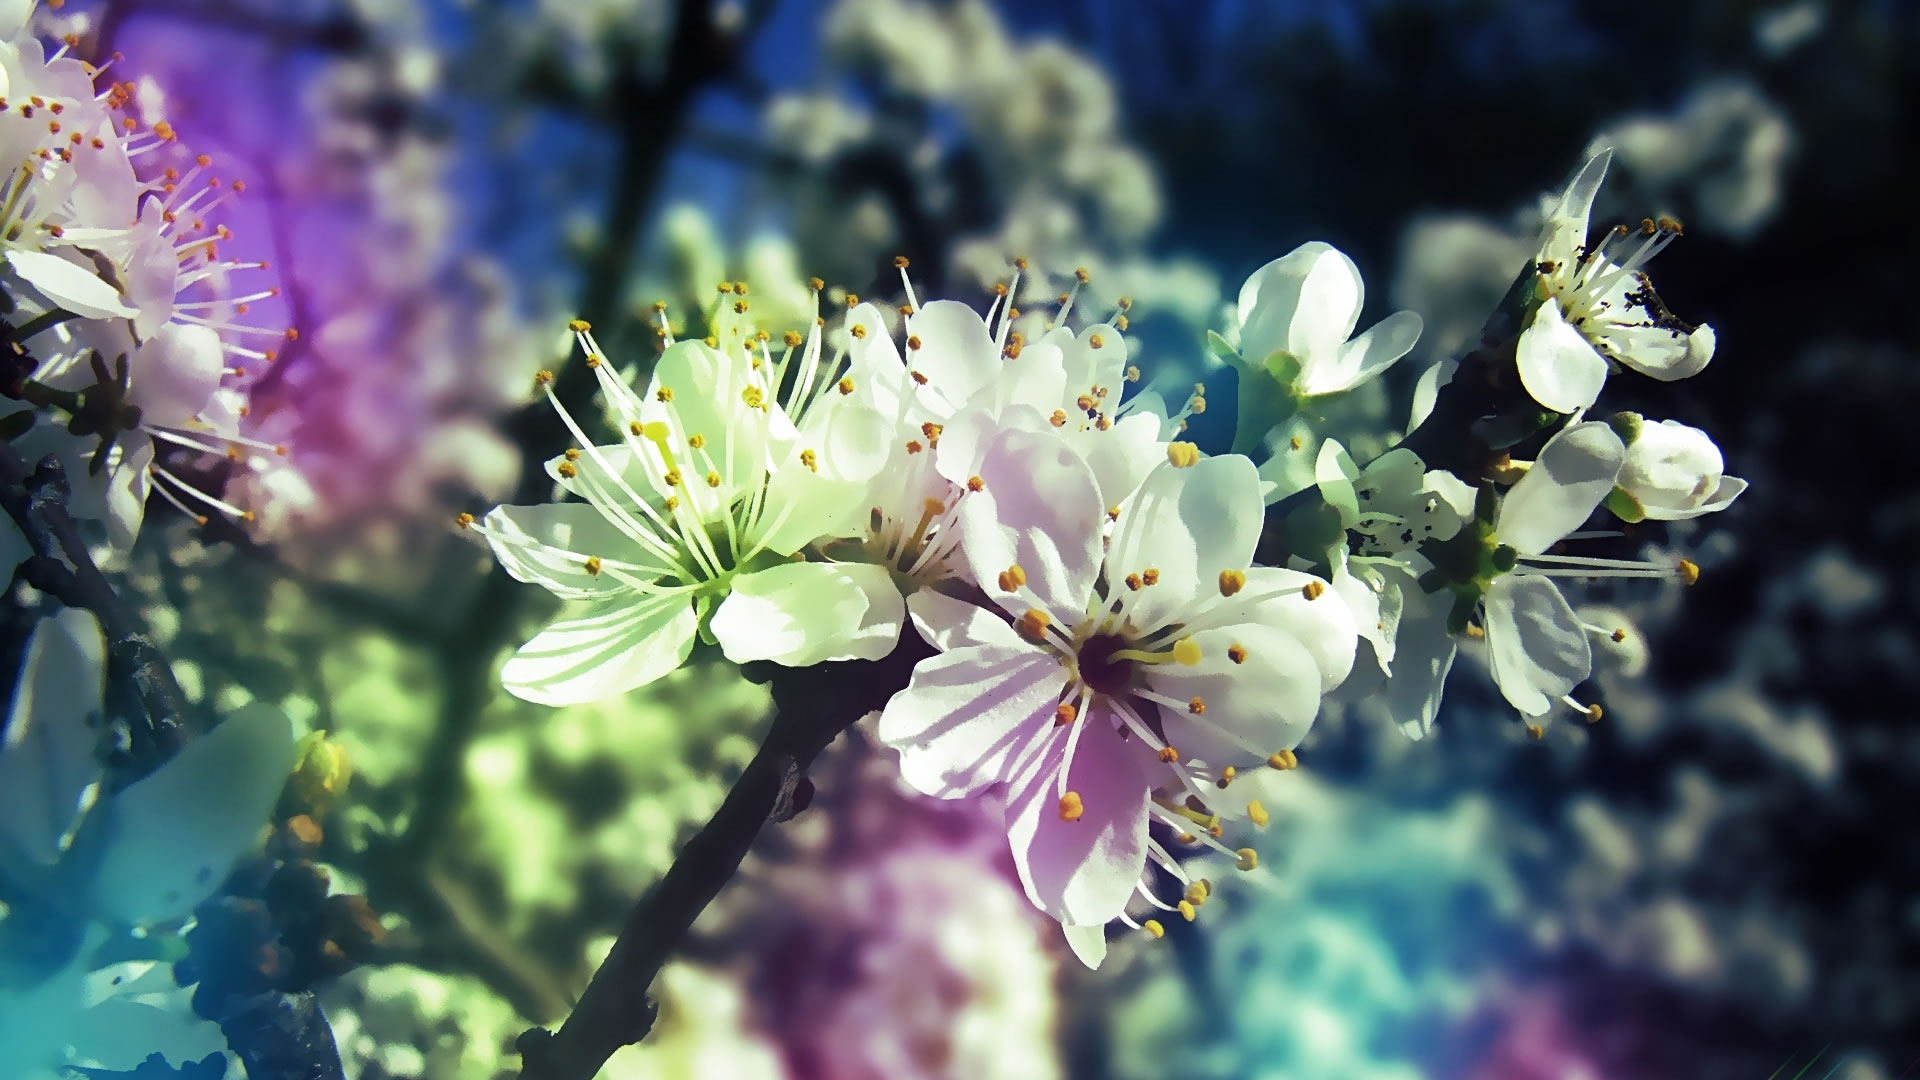 Nature Flowers Hd